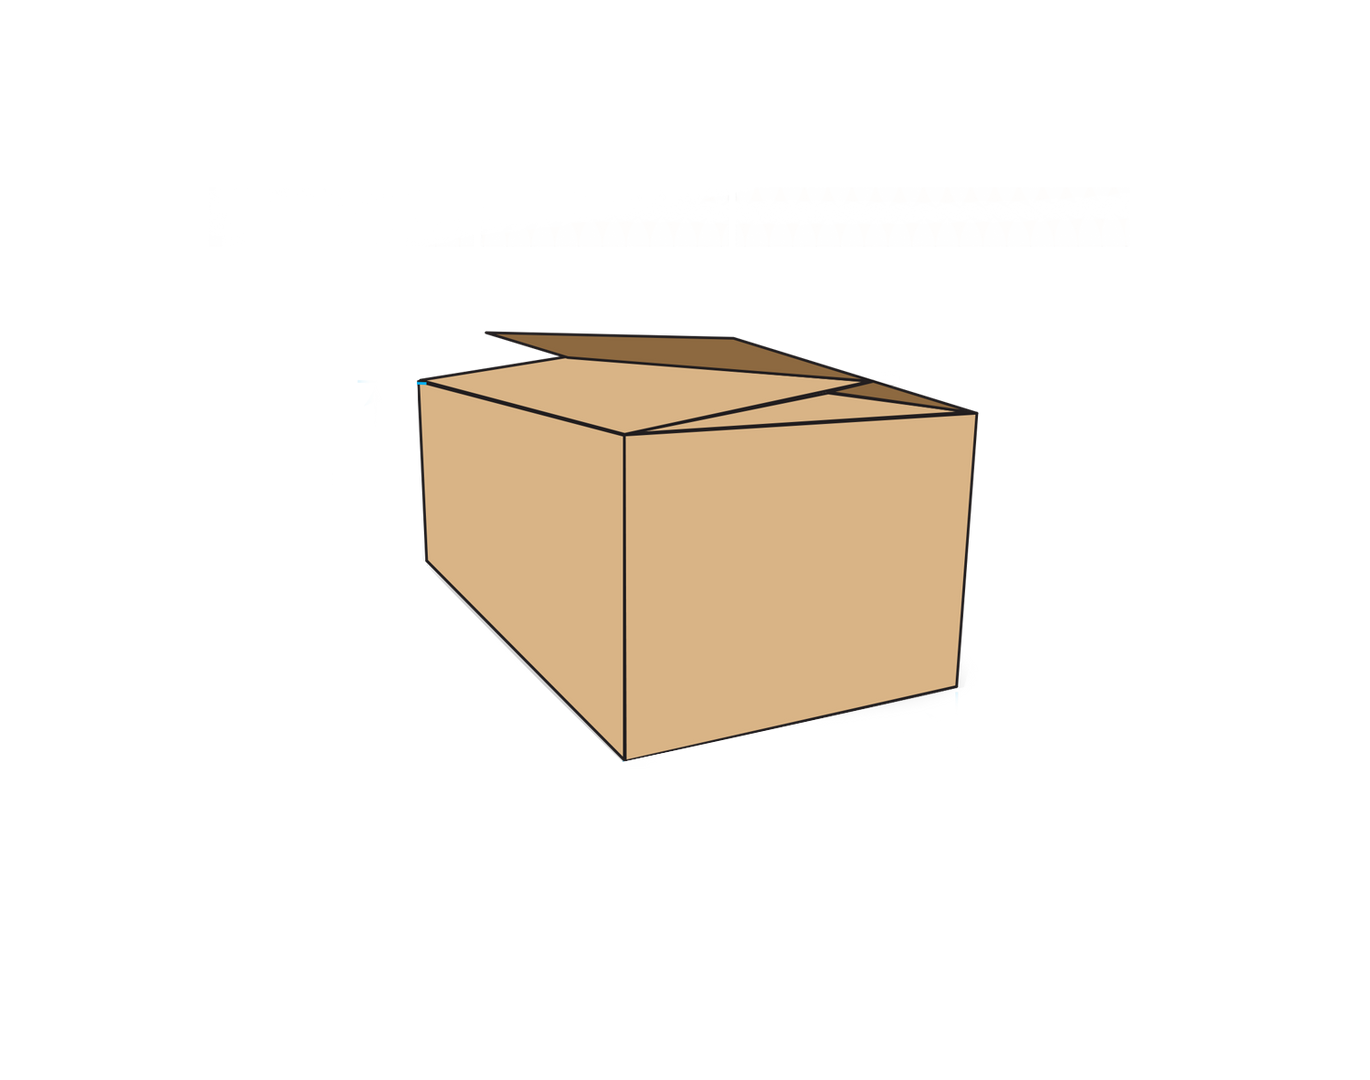 Overlap-Slotted-Carton